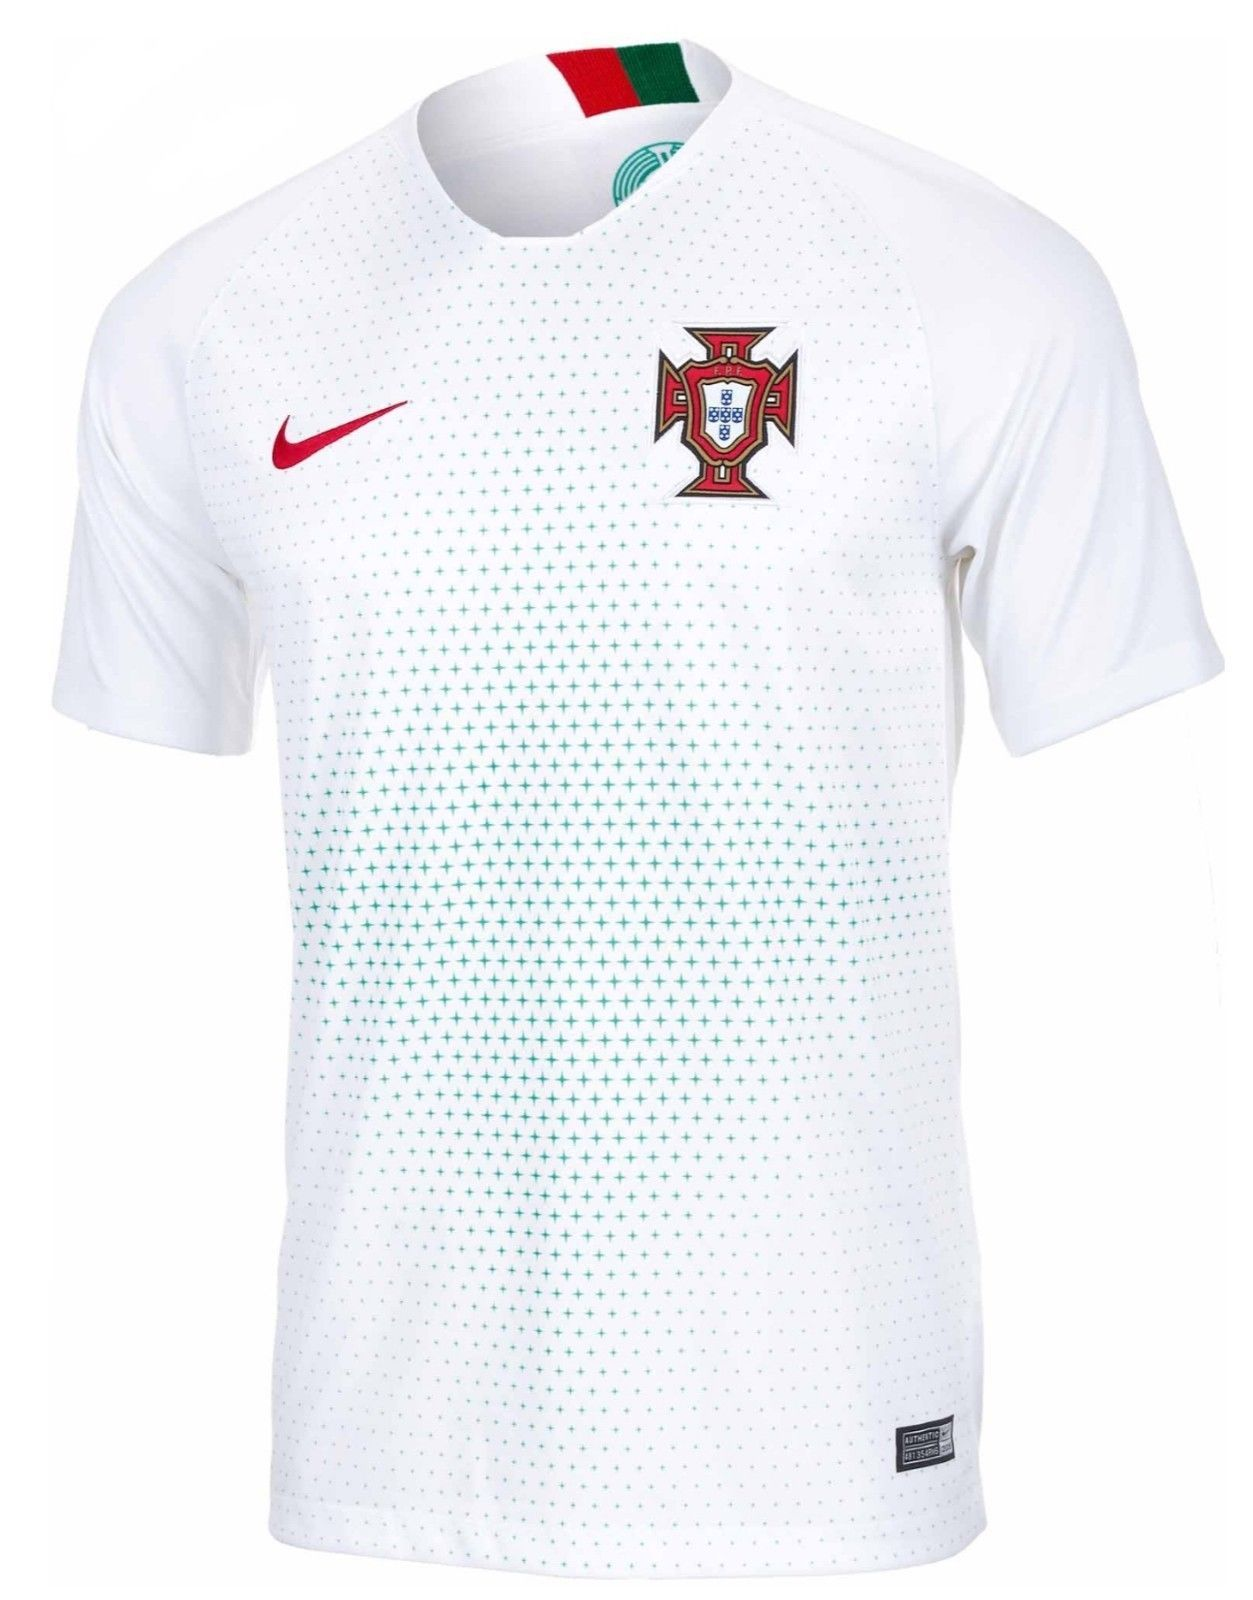 New Nike 2018 World Cup Portugal Away Soccer Jersey 893876-100 Mens Size XL  Discount Price 89.95 Free Shipping Buy it Now 292b8b4b8